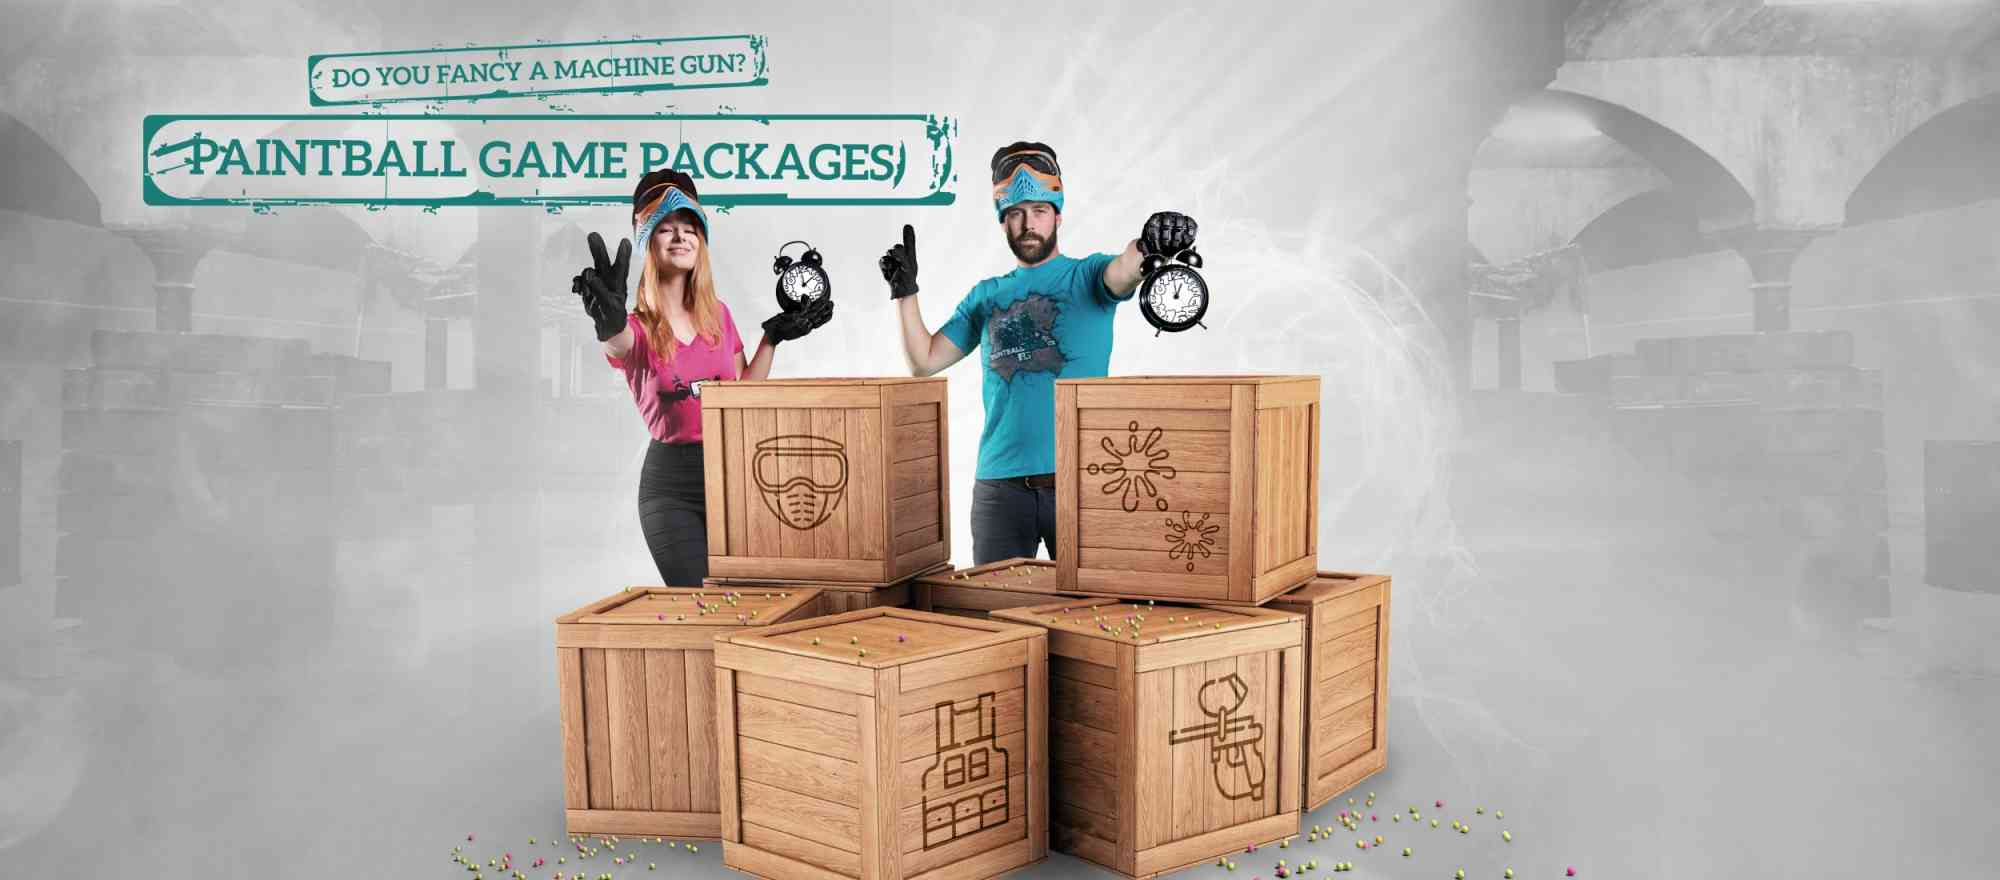 Paintball game packages